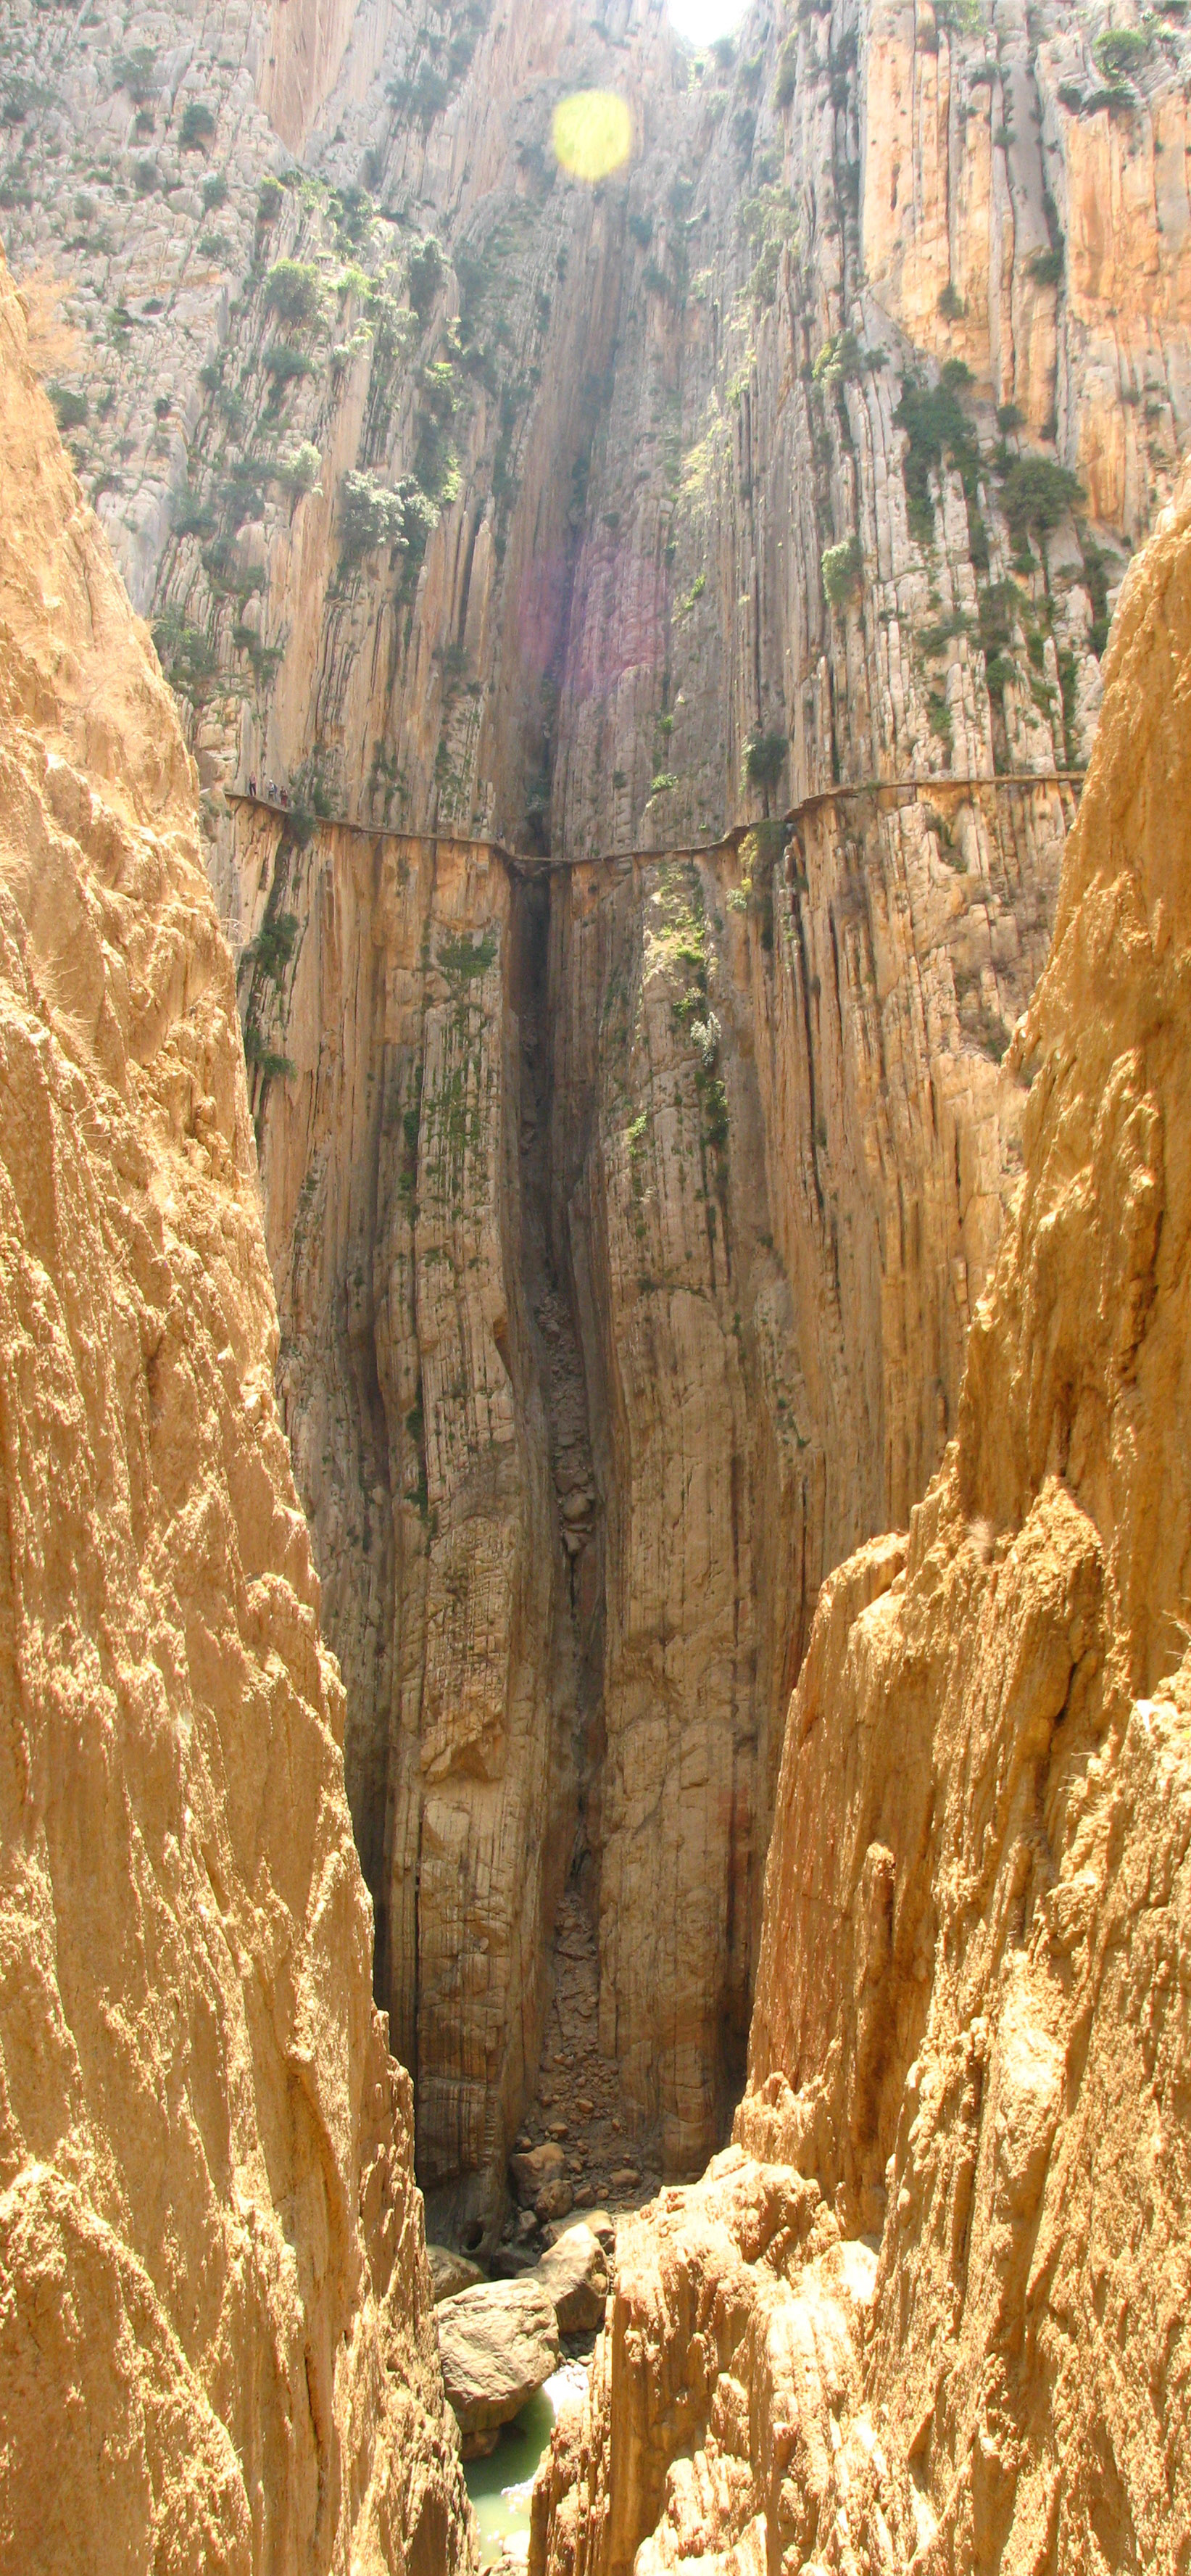 http://upload.wikimedia.org/wikipedia/commons/7/7a/Caminito_del_Rey_3.jpg